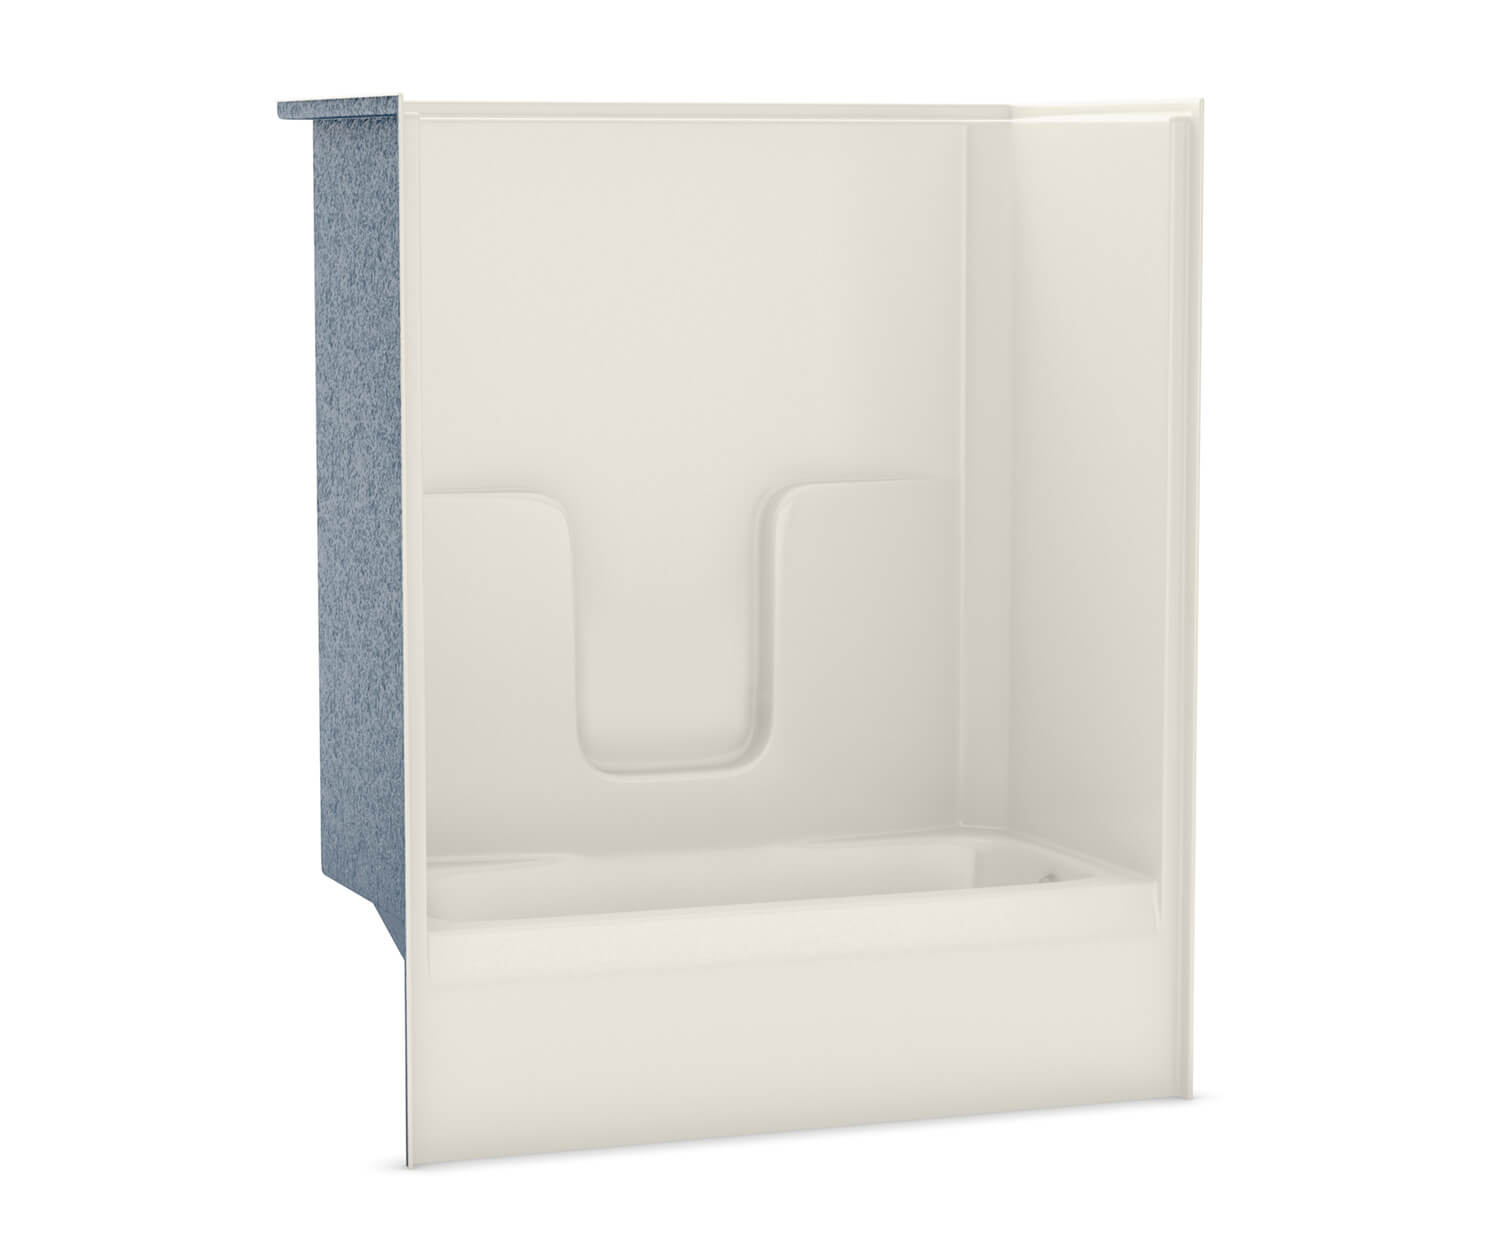 Right Hand Drain Biscuit (007) Above Floor Rough Soaking Tub & Shower